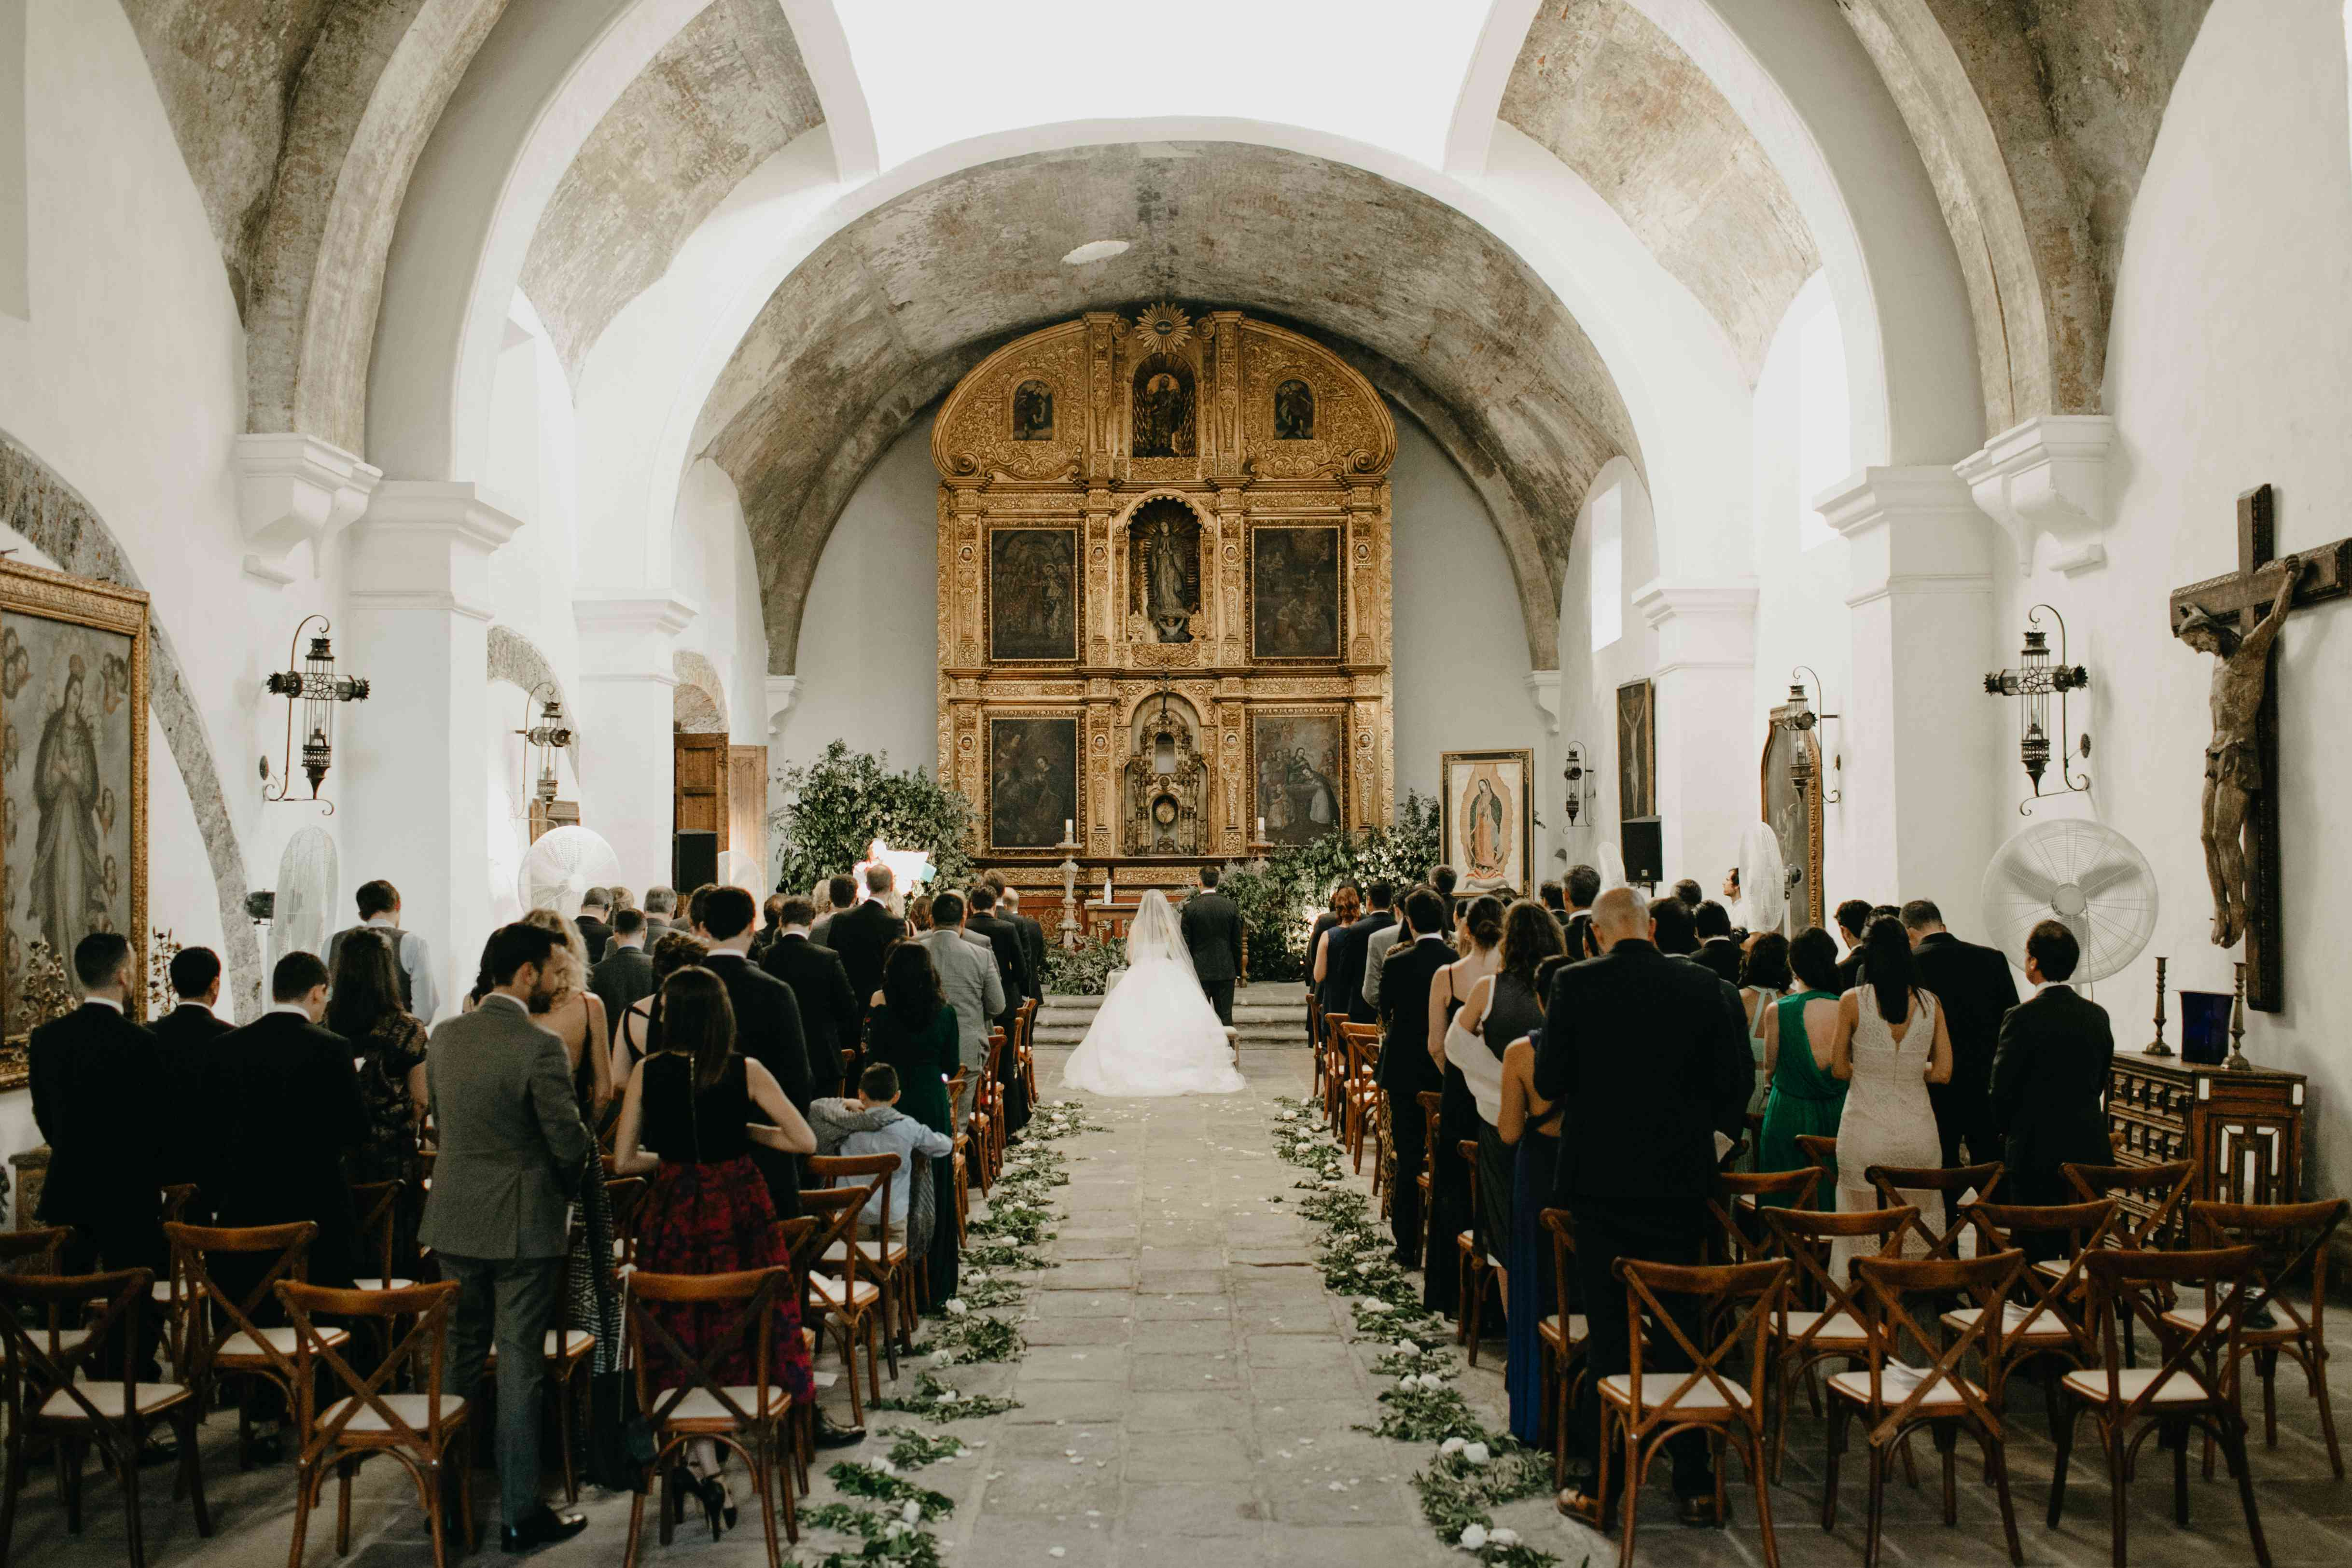 Wedding aisle with bride, groom, and guests facing front of church